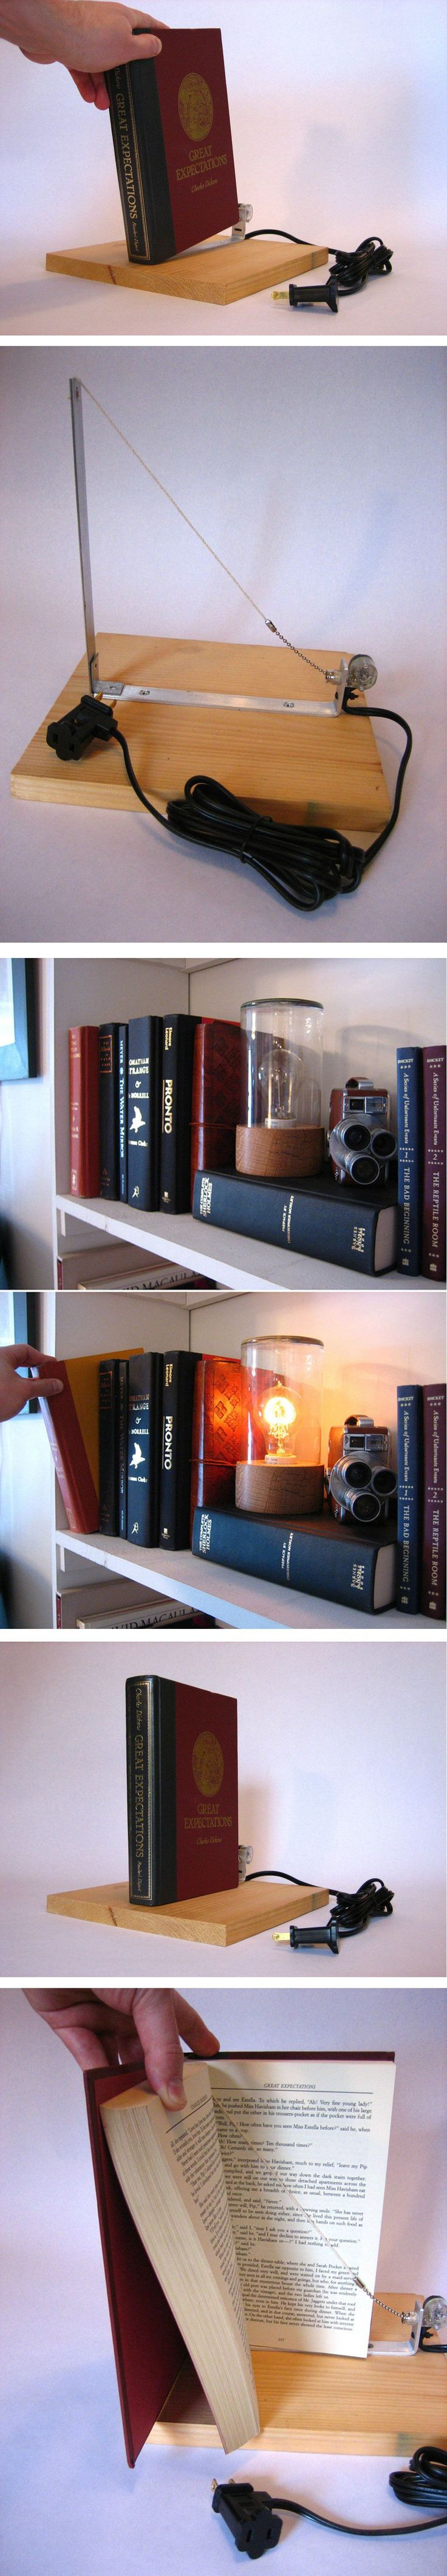 Secret Bookshelf Light Switch, linked to the Instructables web site with the step by step.